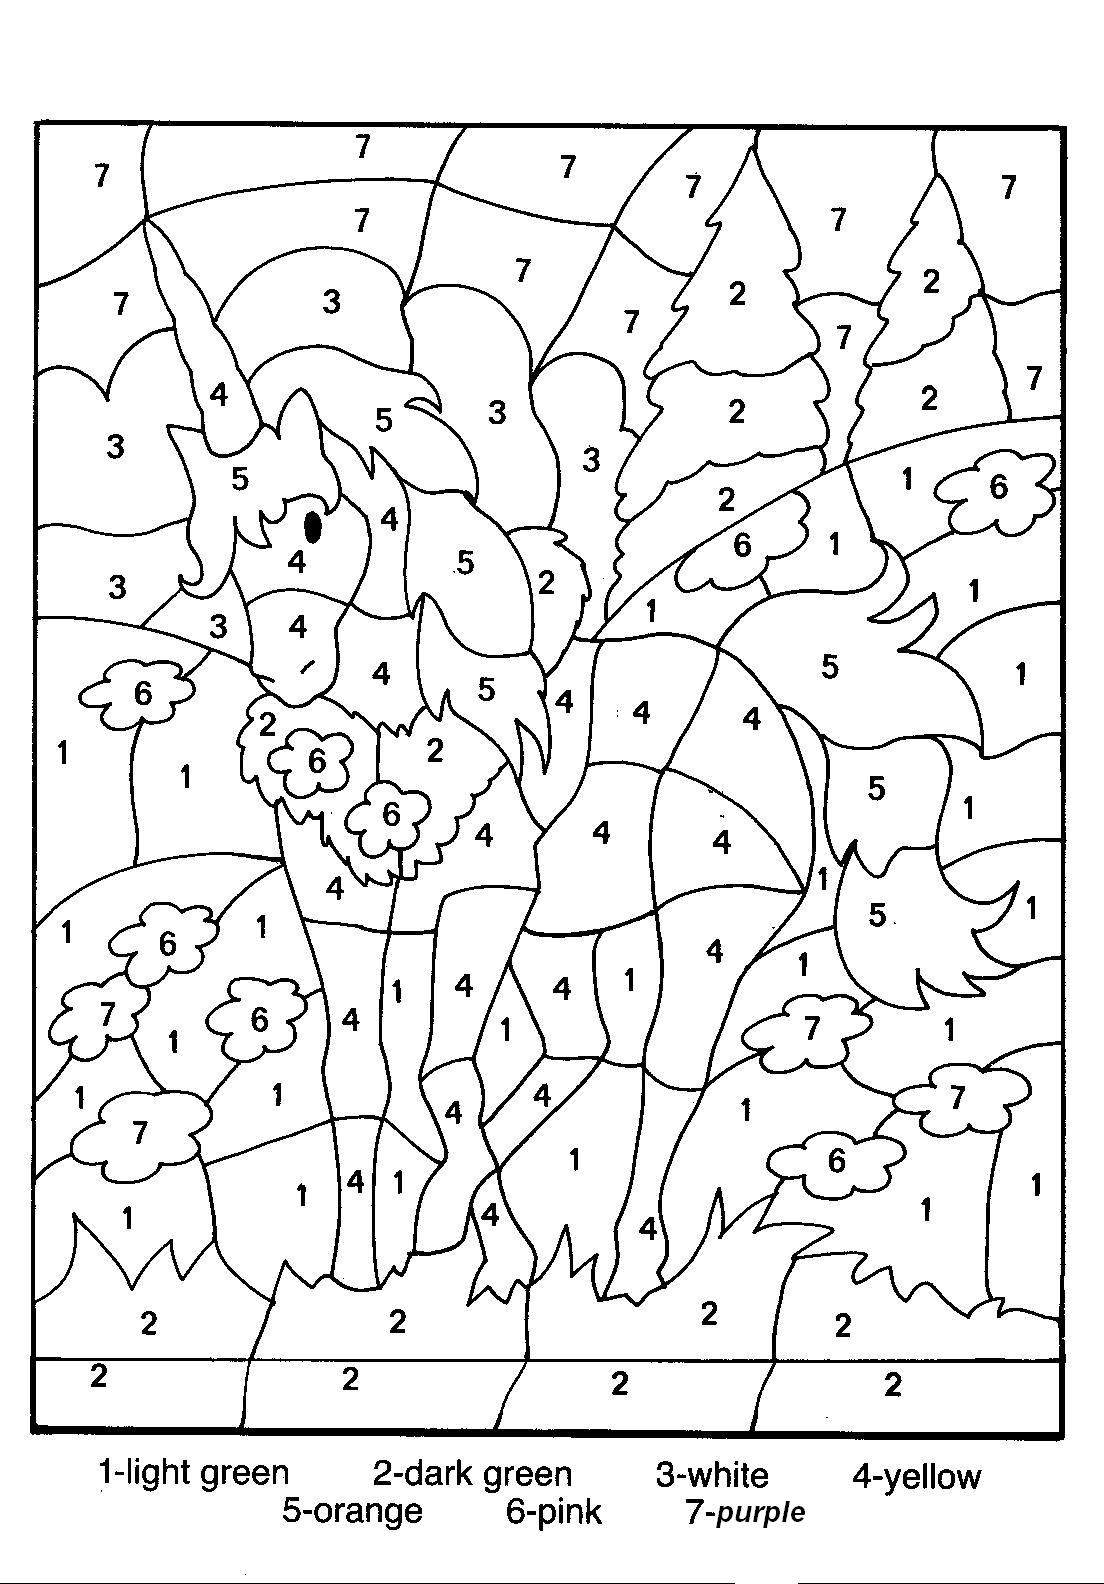 Printable Coloring Numbers : Free printable color by number coloring pages best